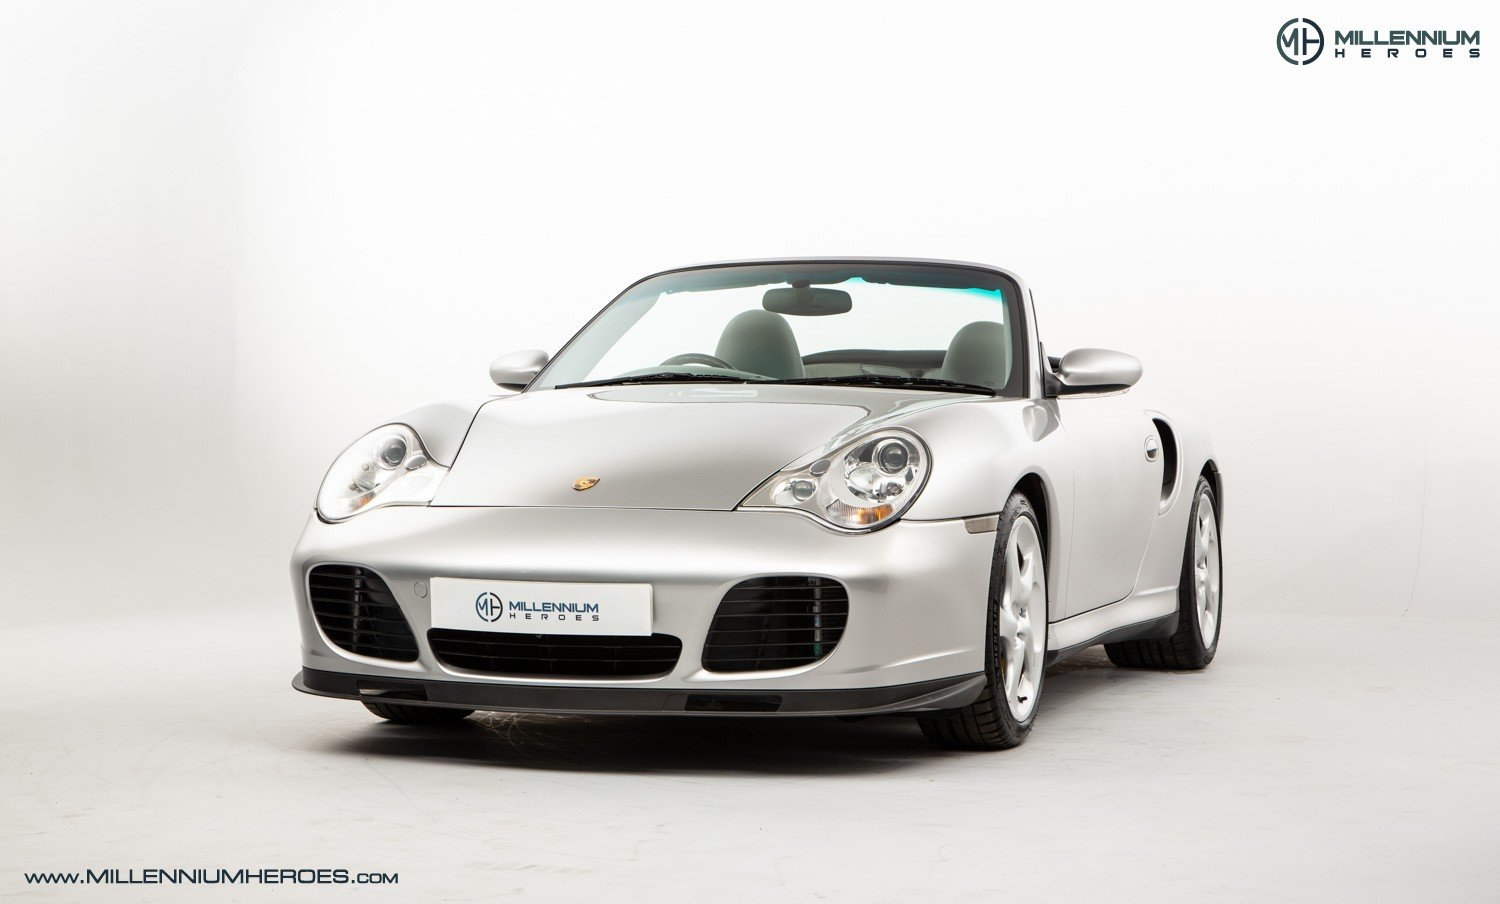 2004 PORSCHE 996 TURBO // X50 PACK // MANUAL // 19K MILES For Sale (picture 1 of 6)